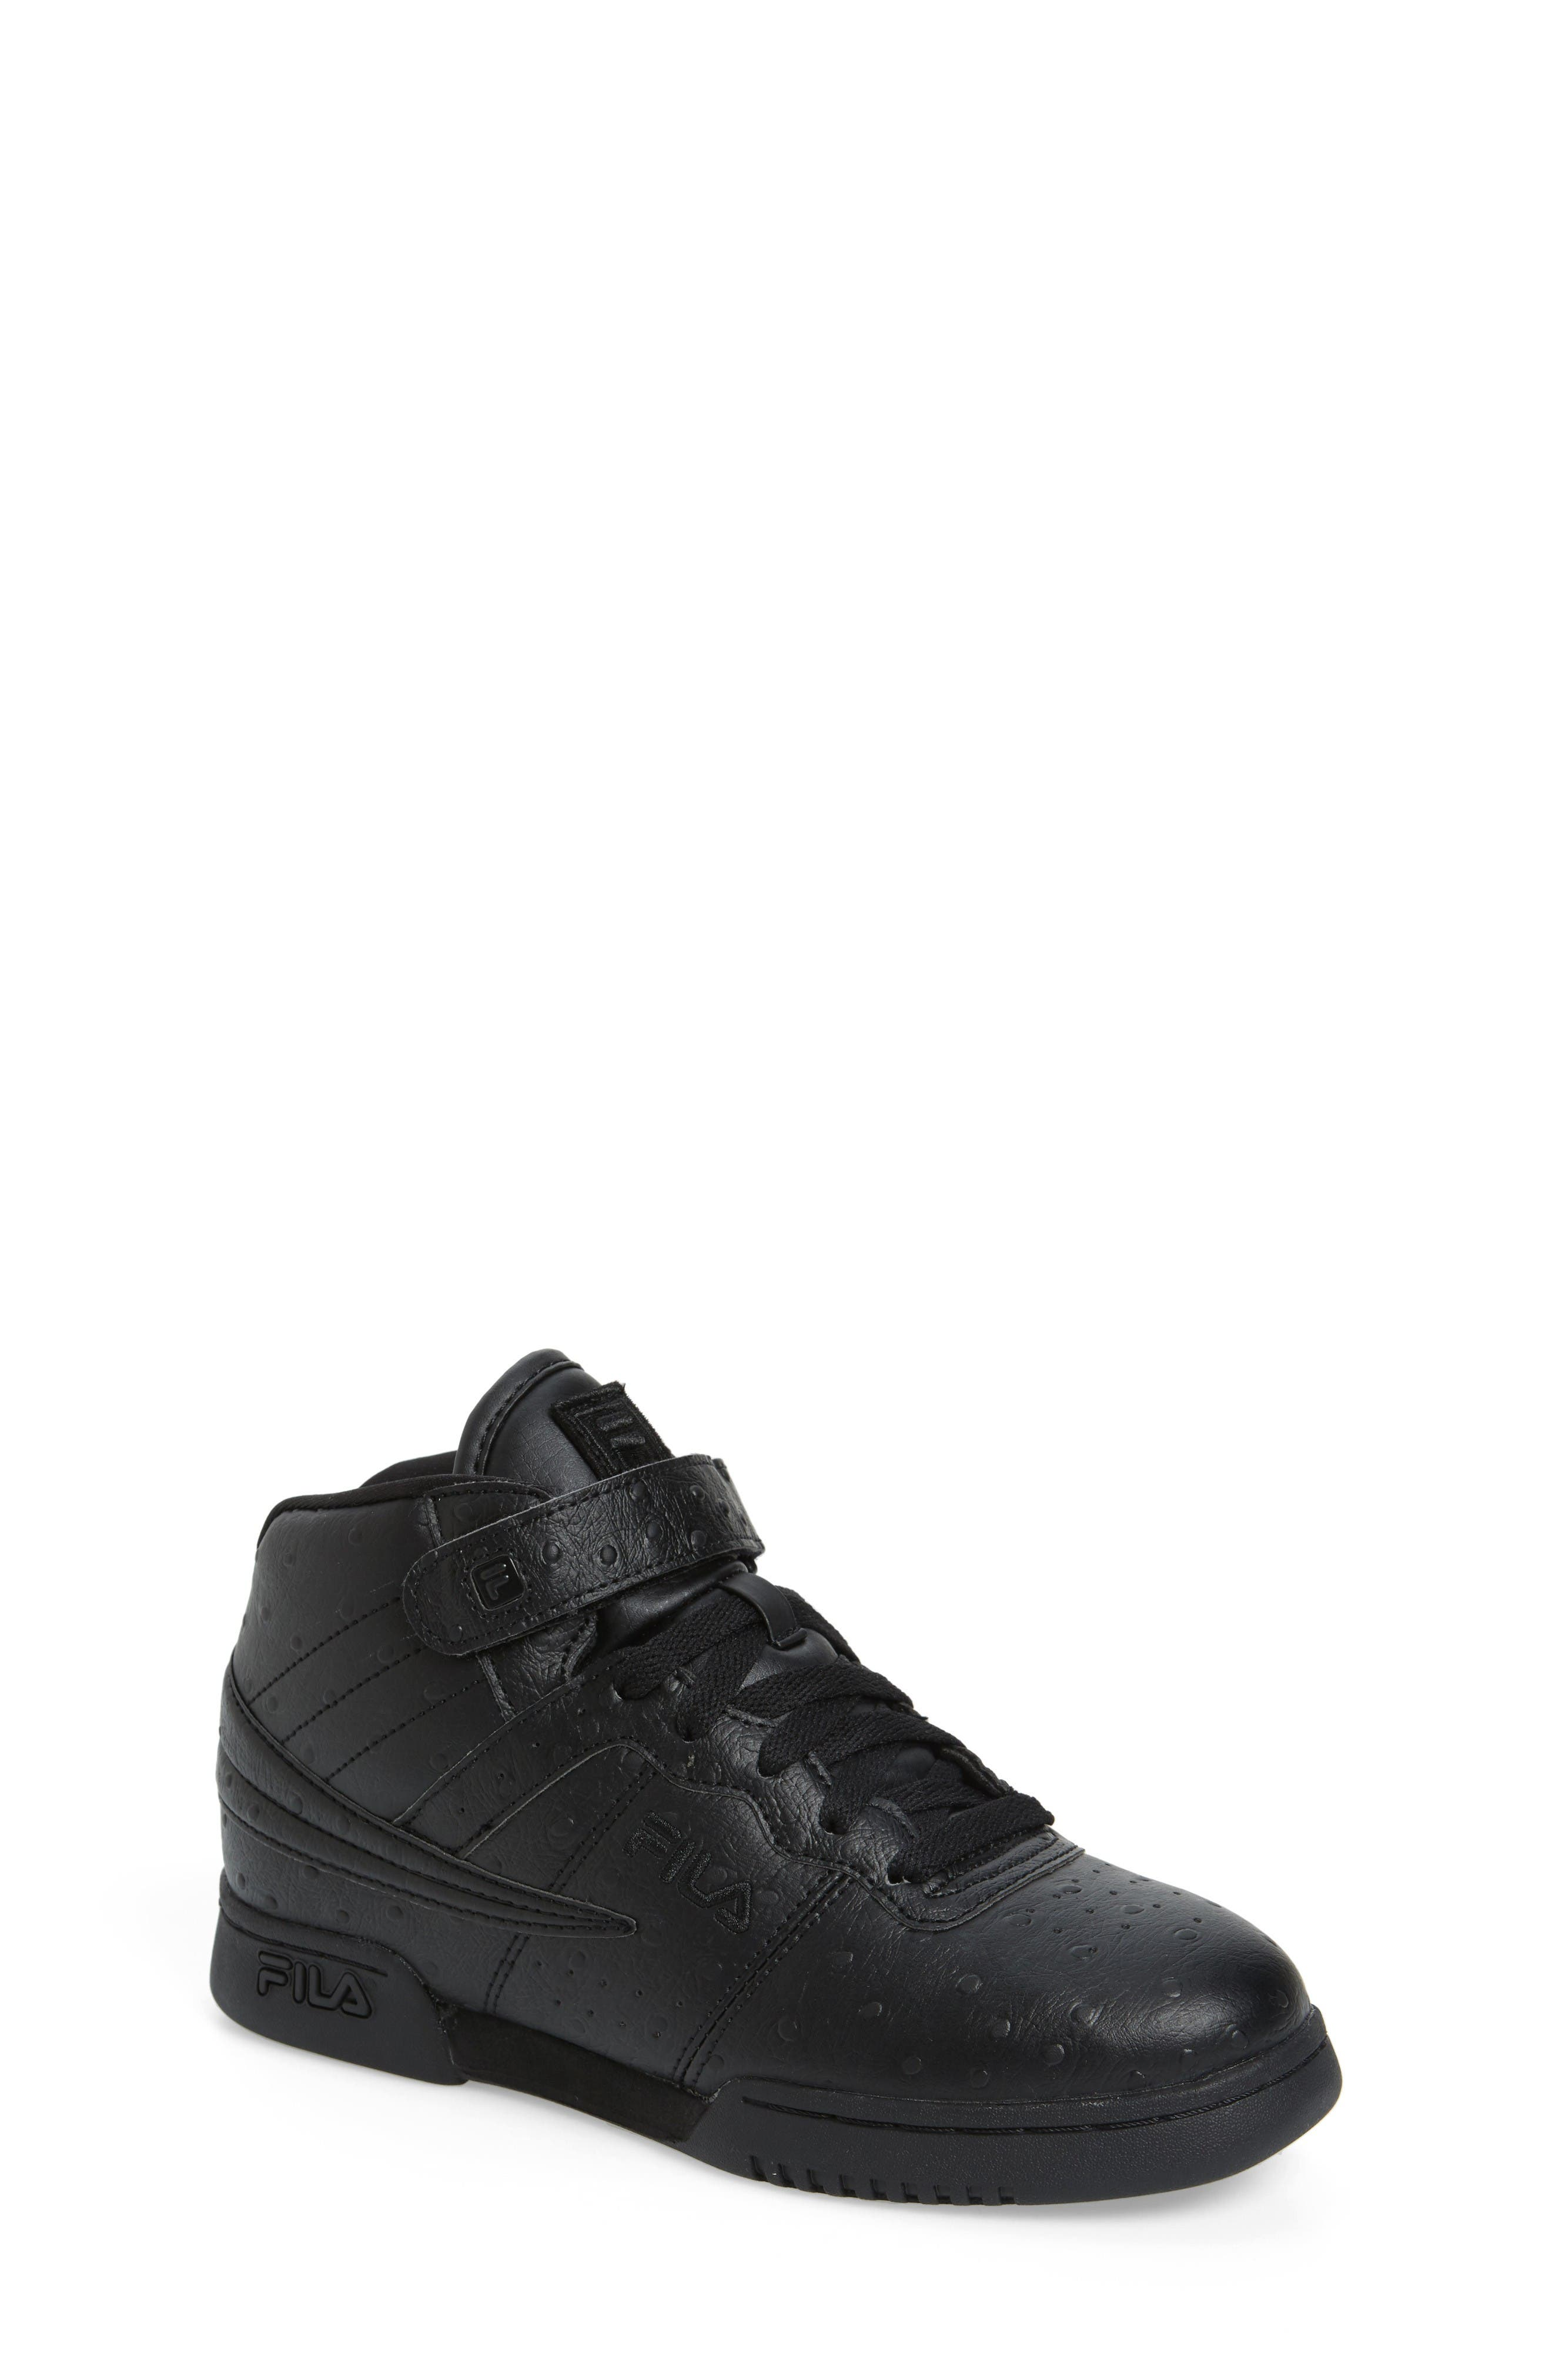 F-13 Ostrich Embossed High Top Sneaker,                         Main,                         color, Triple Black